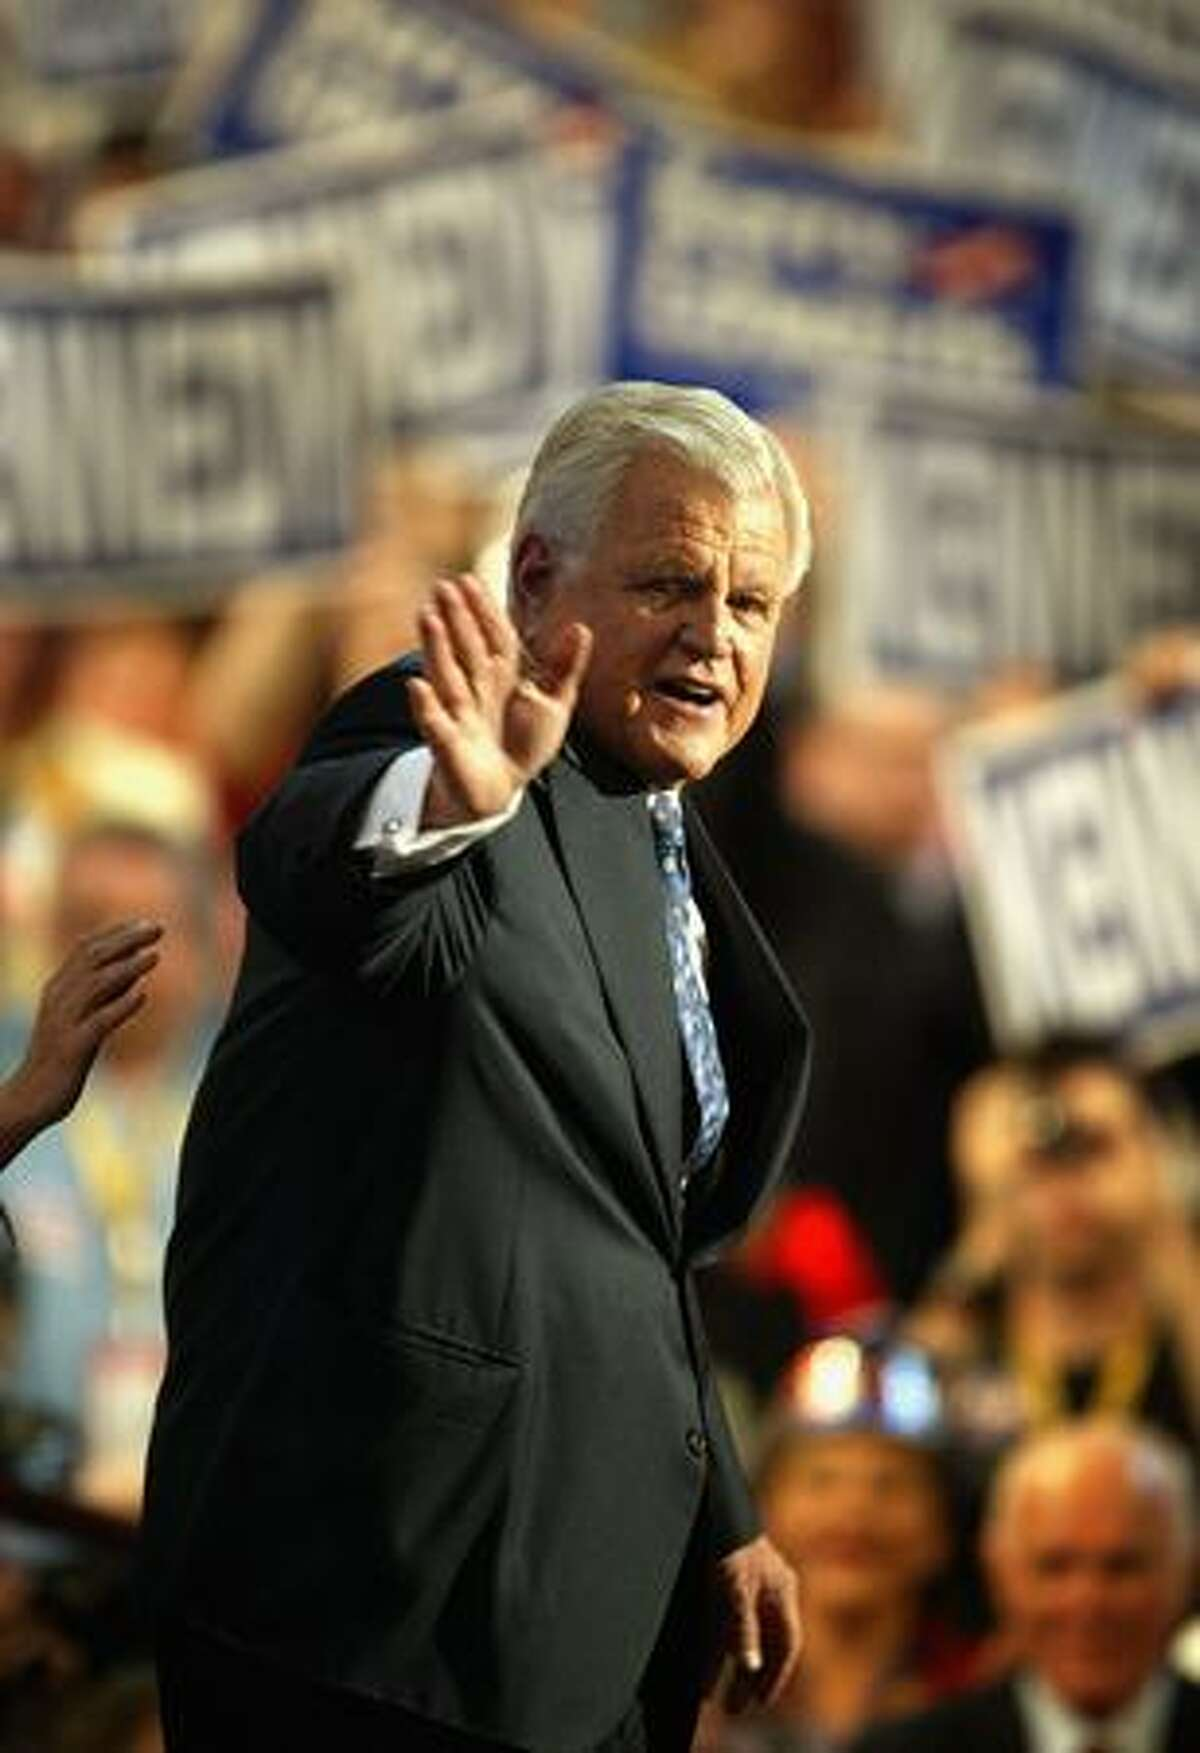 BOSTON - JULY 27: U.S. Senator Ted Kennedy responds to the crowd after speaking to delegates at the Democratic National Convention July 27, 2004 at FleetCenter in Boston, Massachusetts.